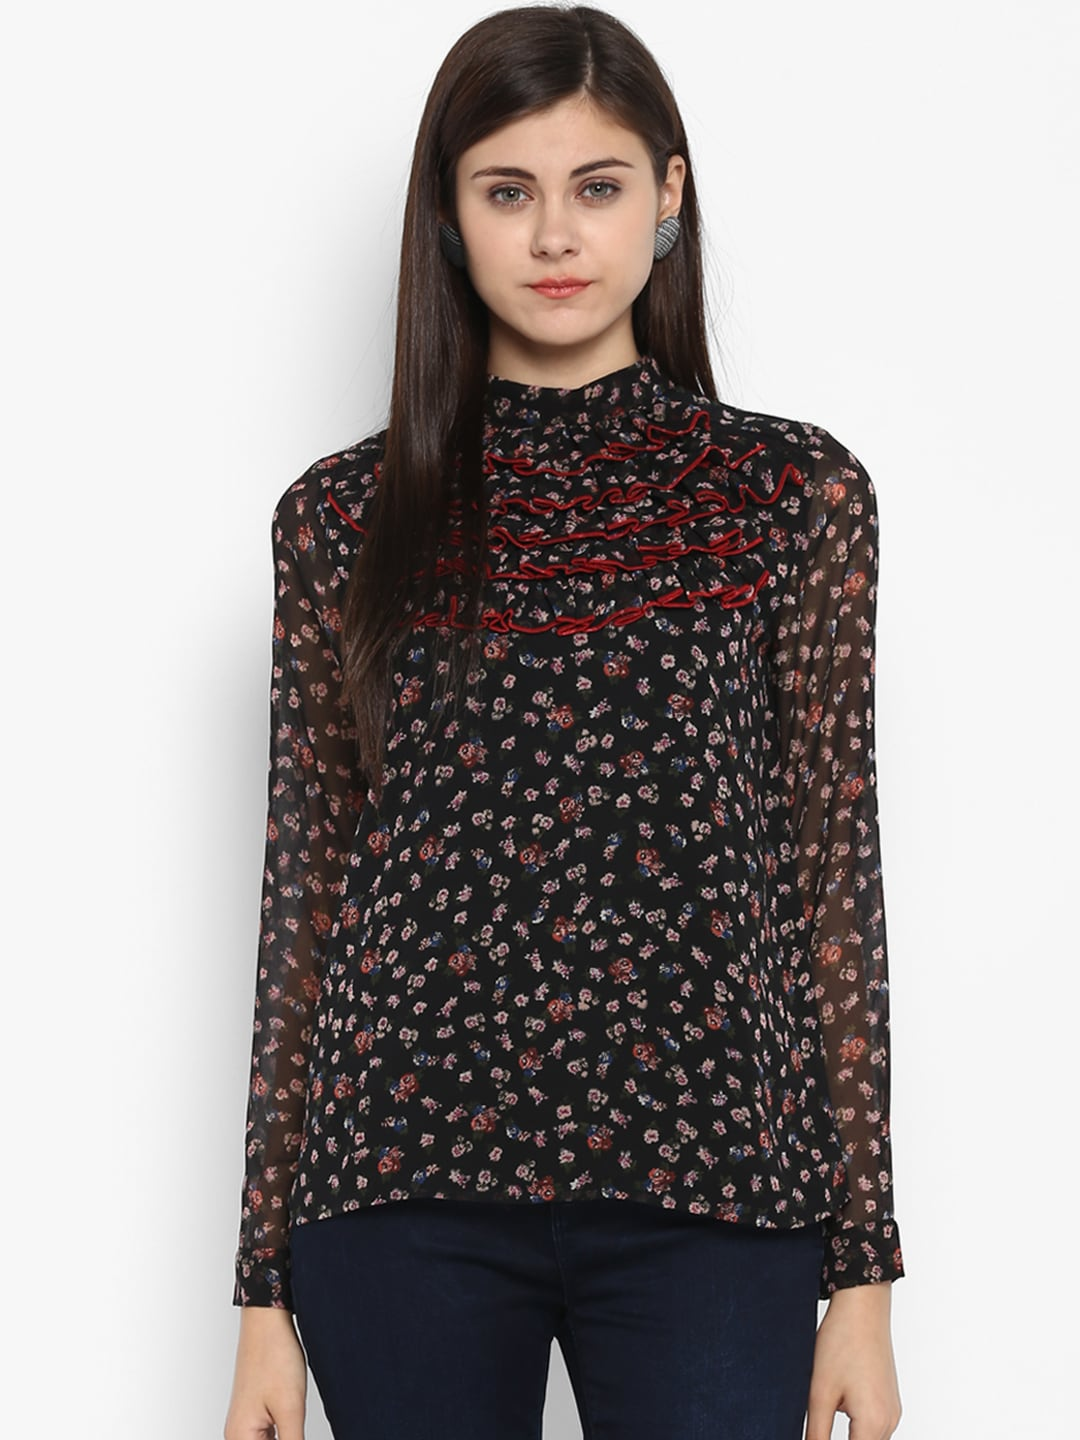 0dc8981209d63 Sequin Tops - Buy Sequin Tops online in India